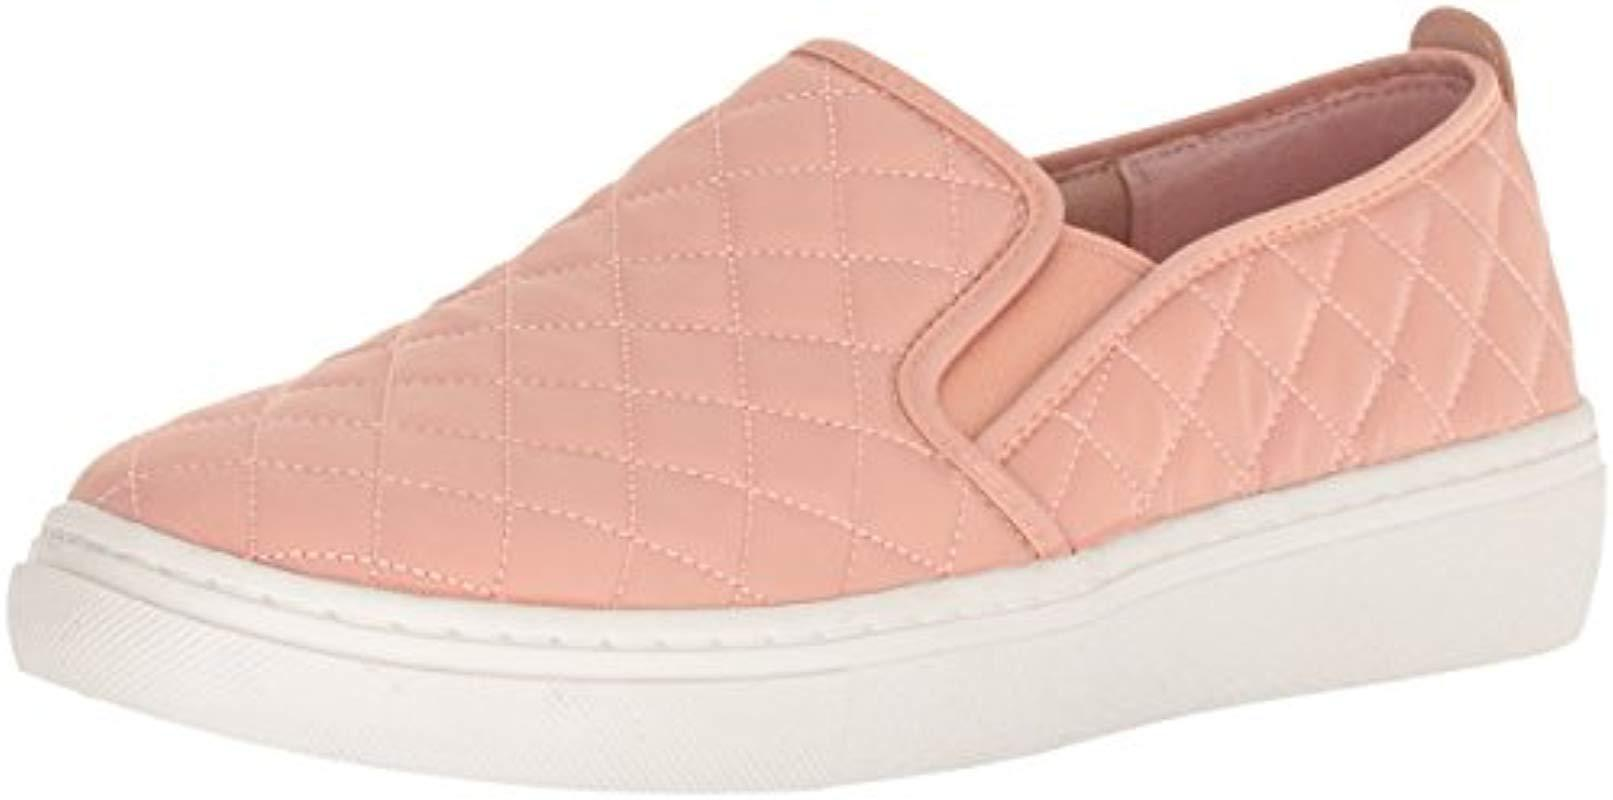 Skechers USA Goldie Quilted (Women's) qP9gwZ